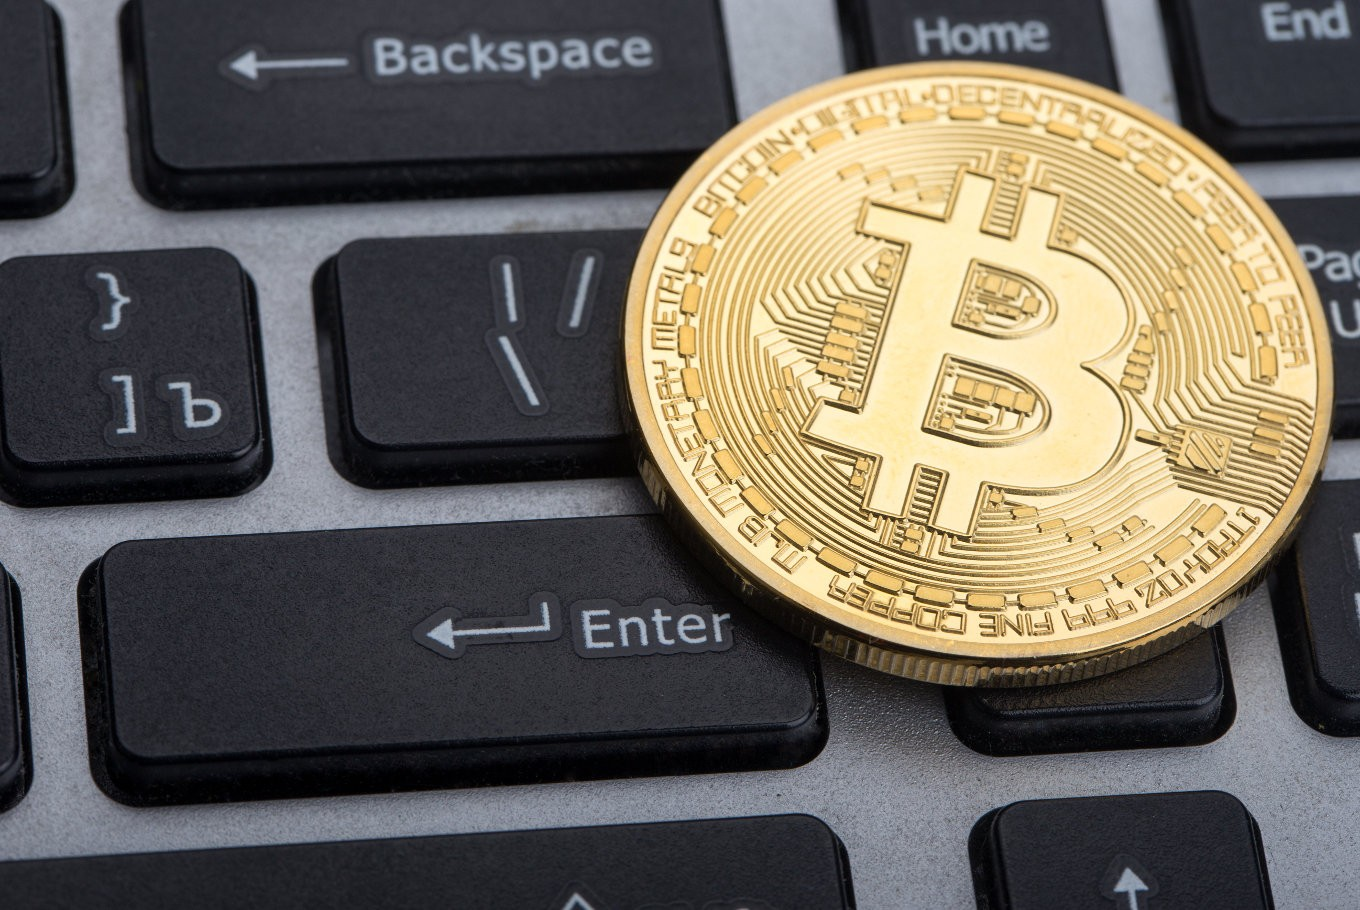 Sharia rulings on cryptocurrencies